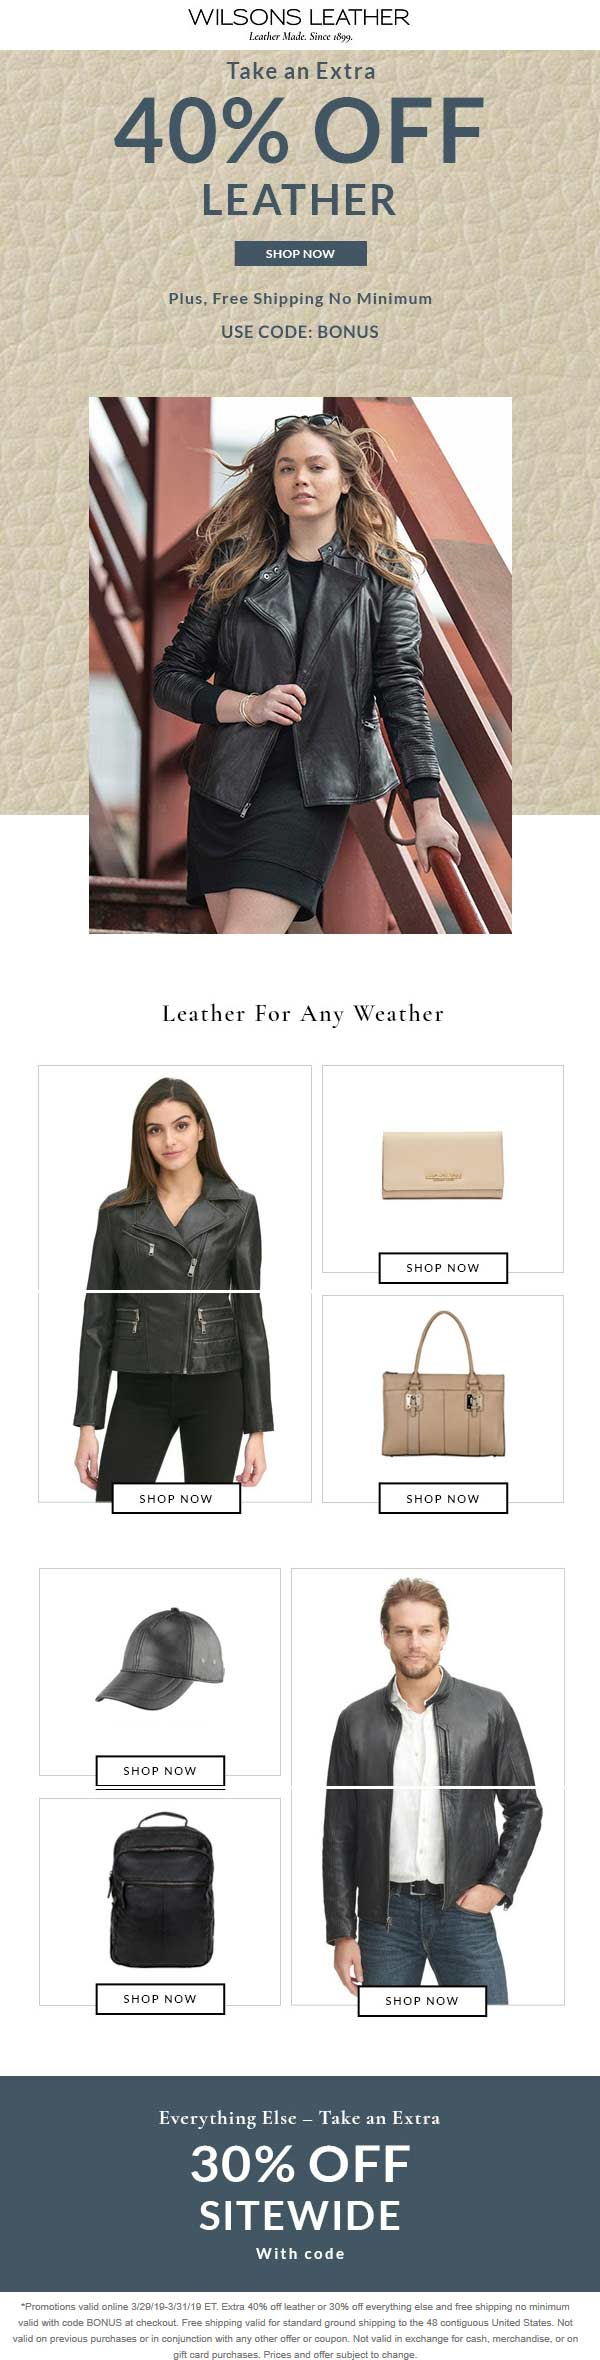 Wilsons Leather Coupon October 2019 30-40% off everything at Wilsons Leather, or online via promo code BONUS